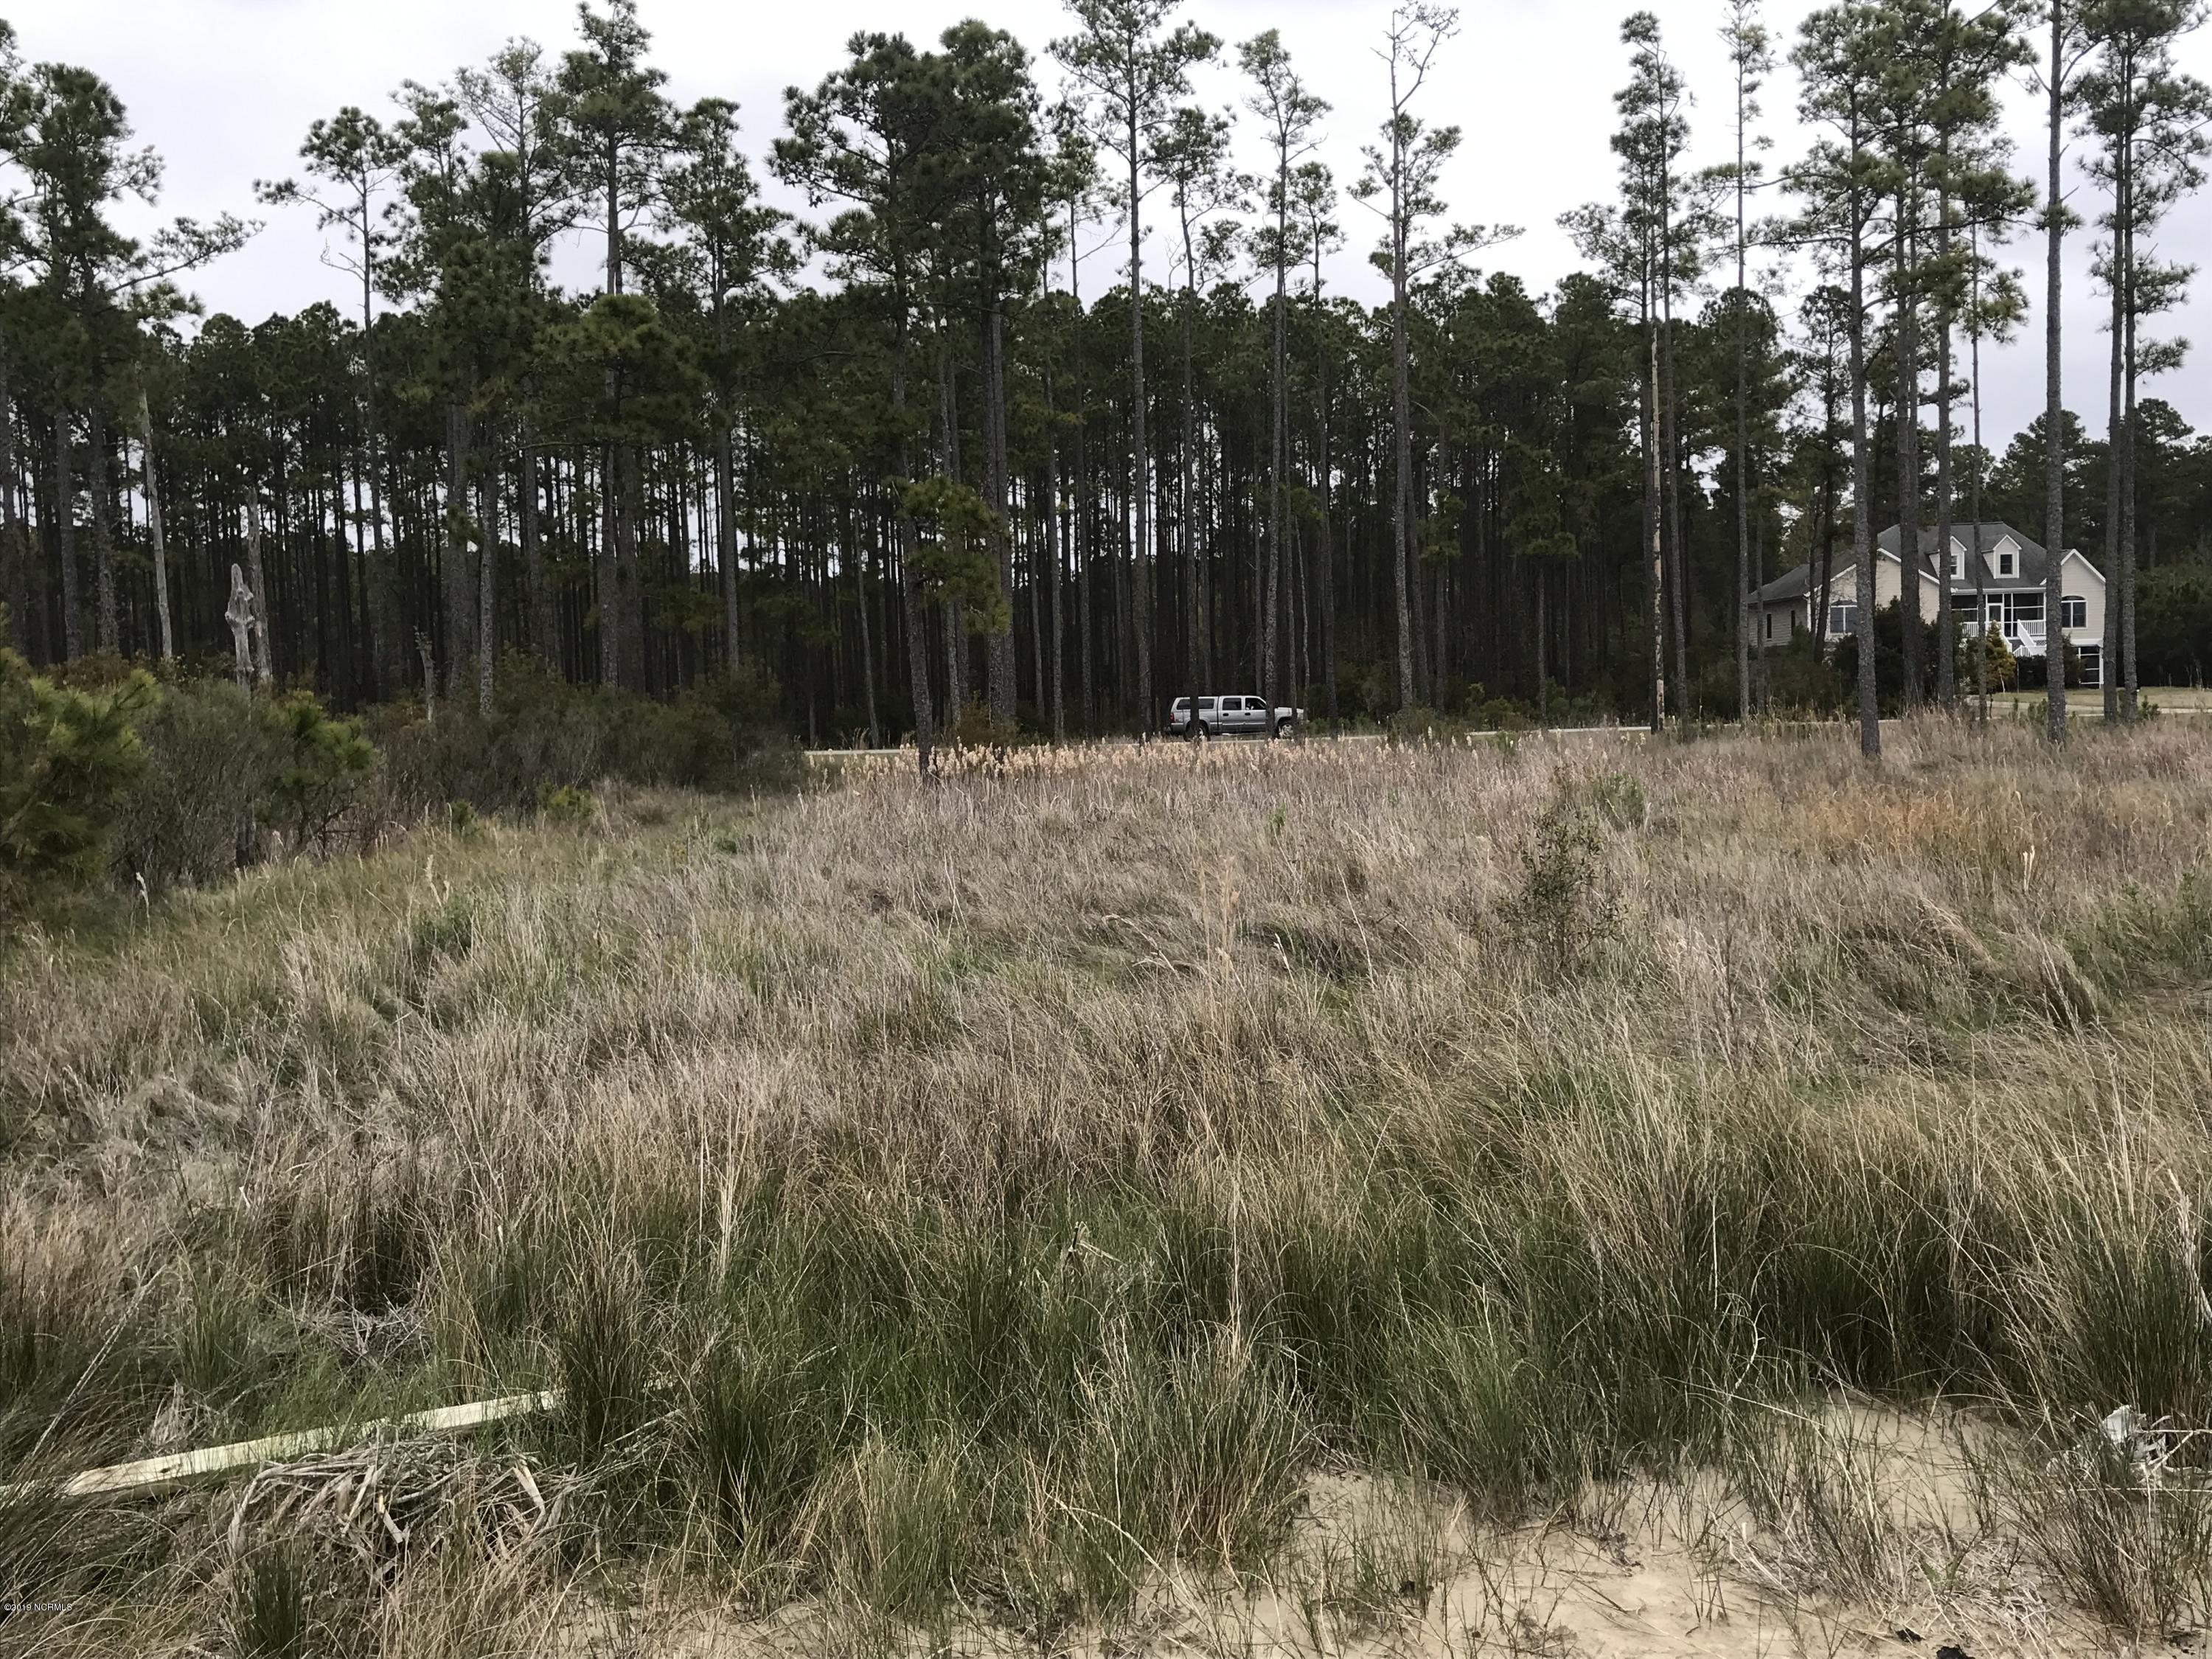 Lot 51 Dowry Creek, Belhaven, North Carolina 27810, ,Residential land,For sale,Dowry,100112516